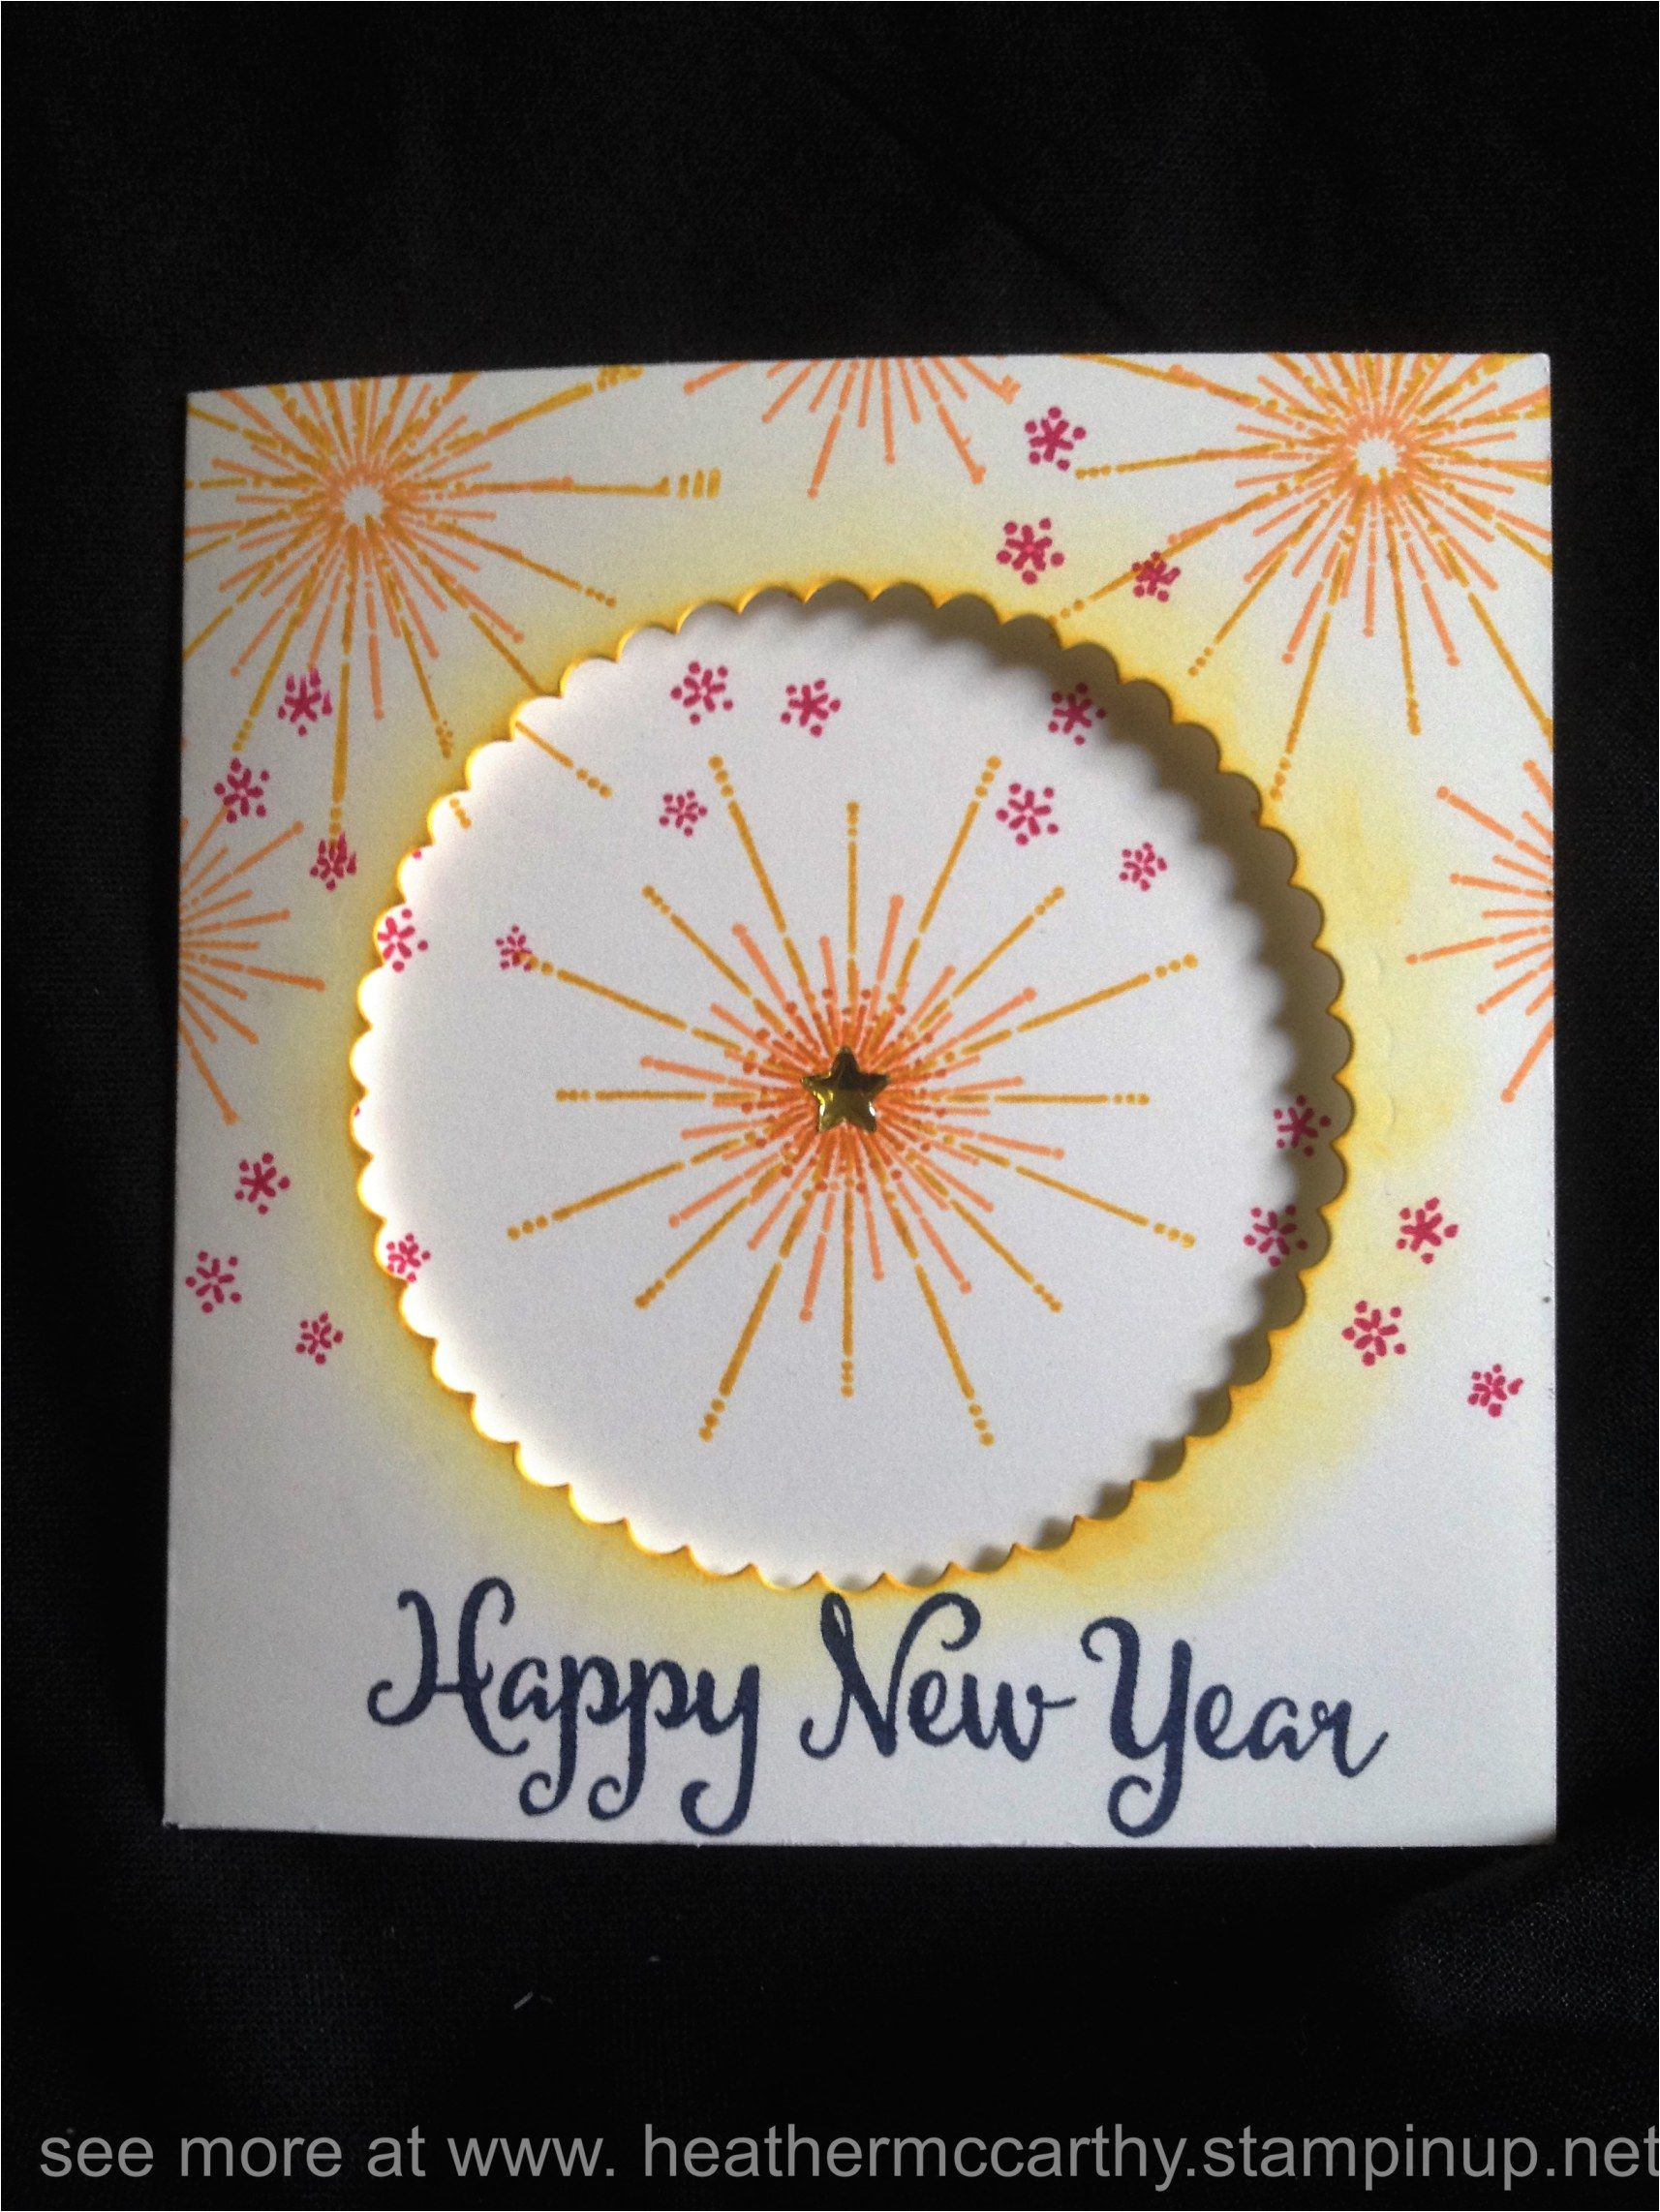 New Year Greetings Card Design Handmade Stampin Up S It S A Celebration Stamp Set From the 2016